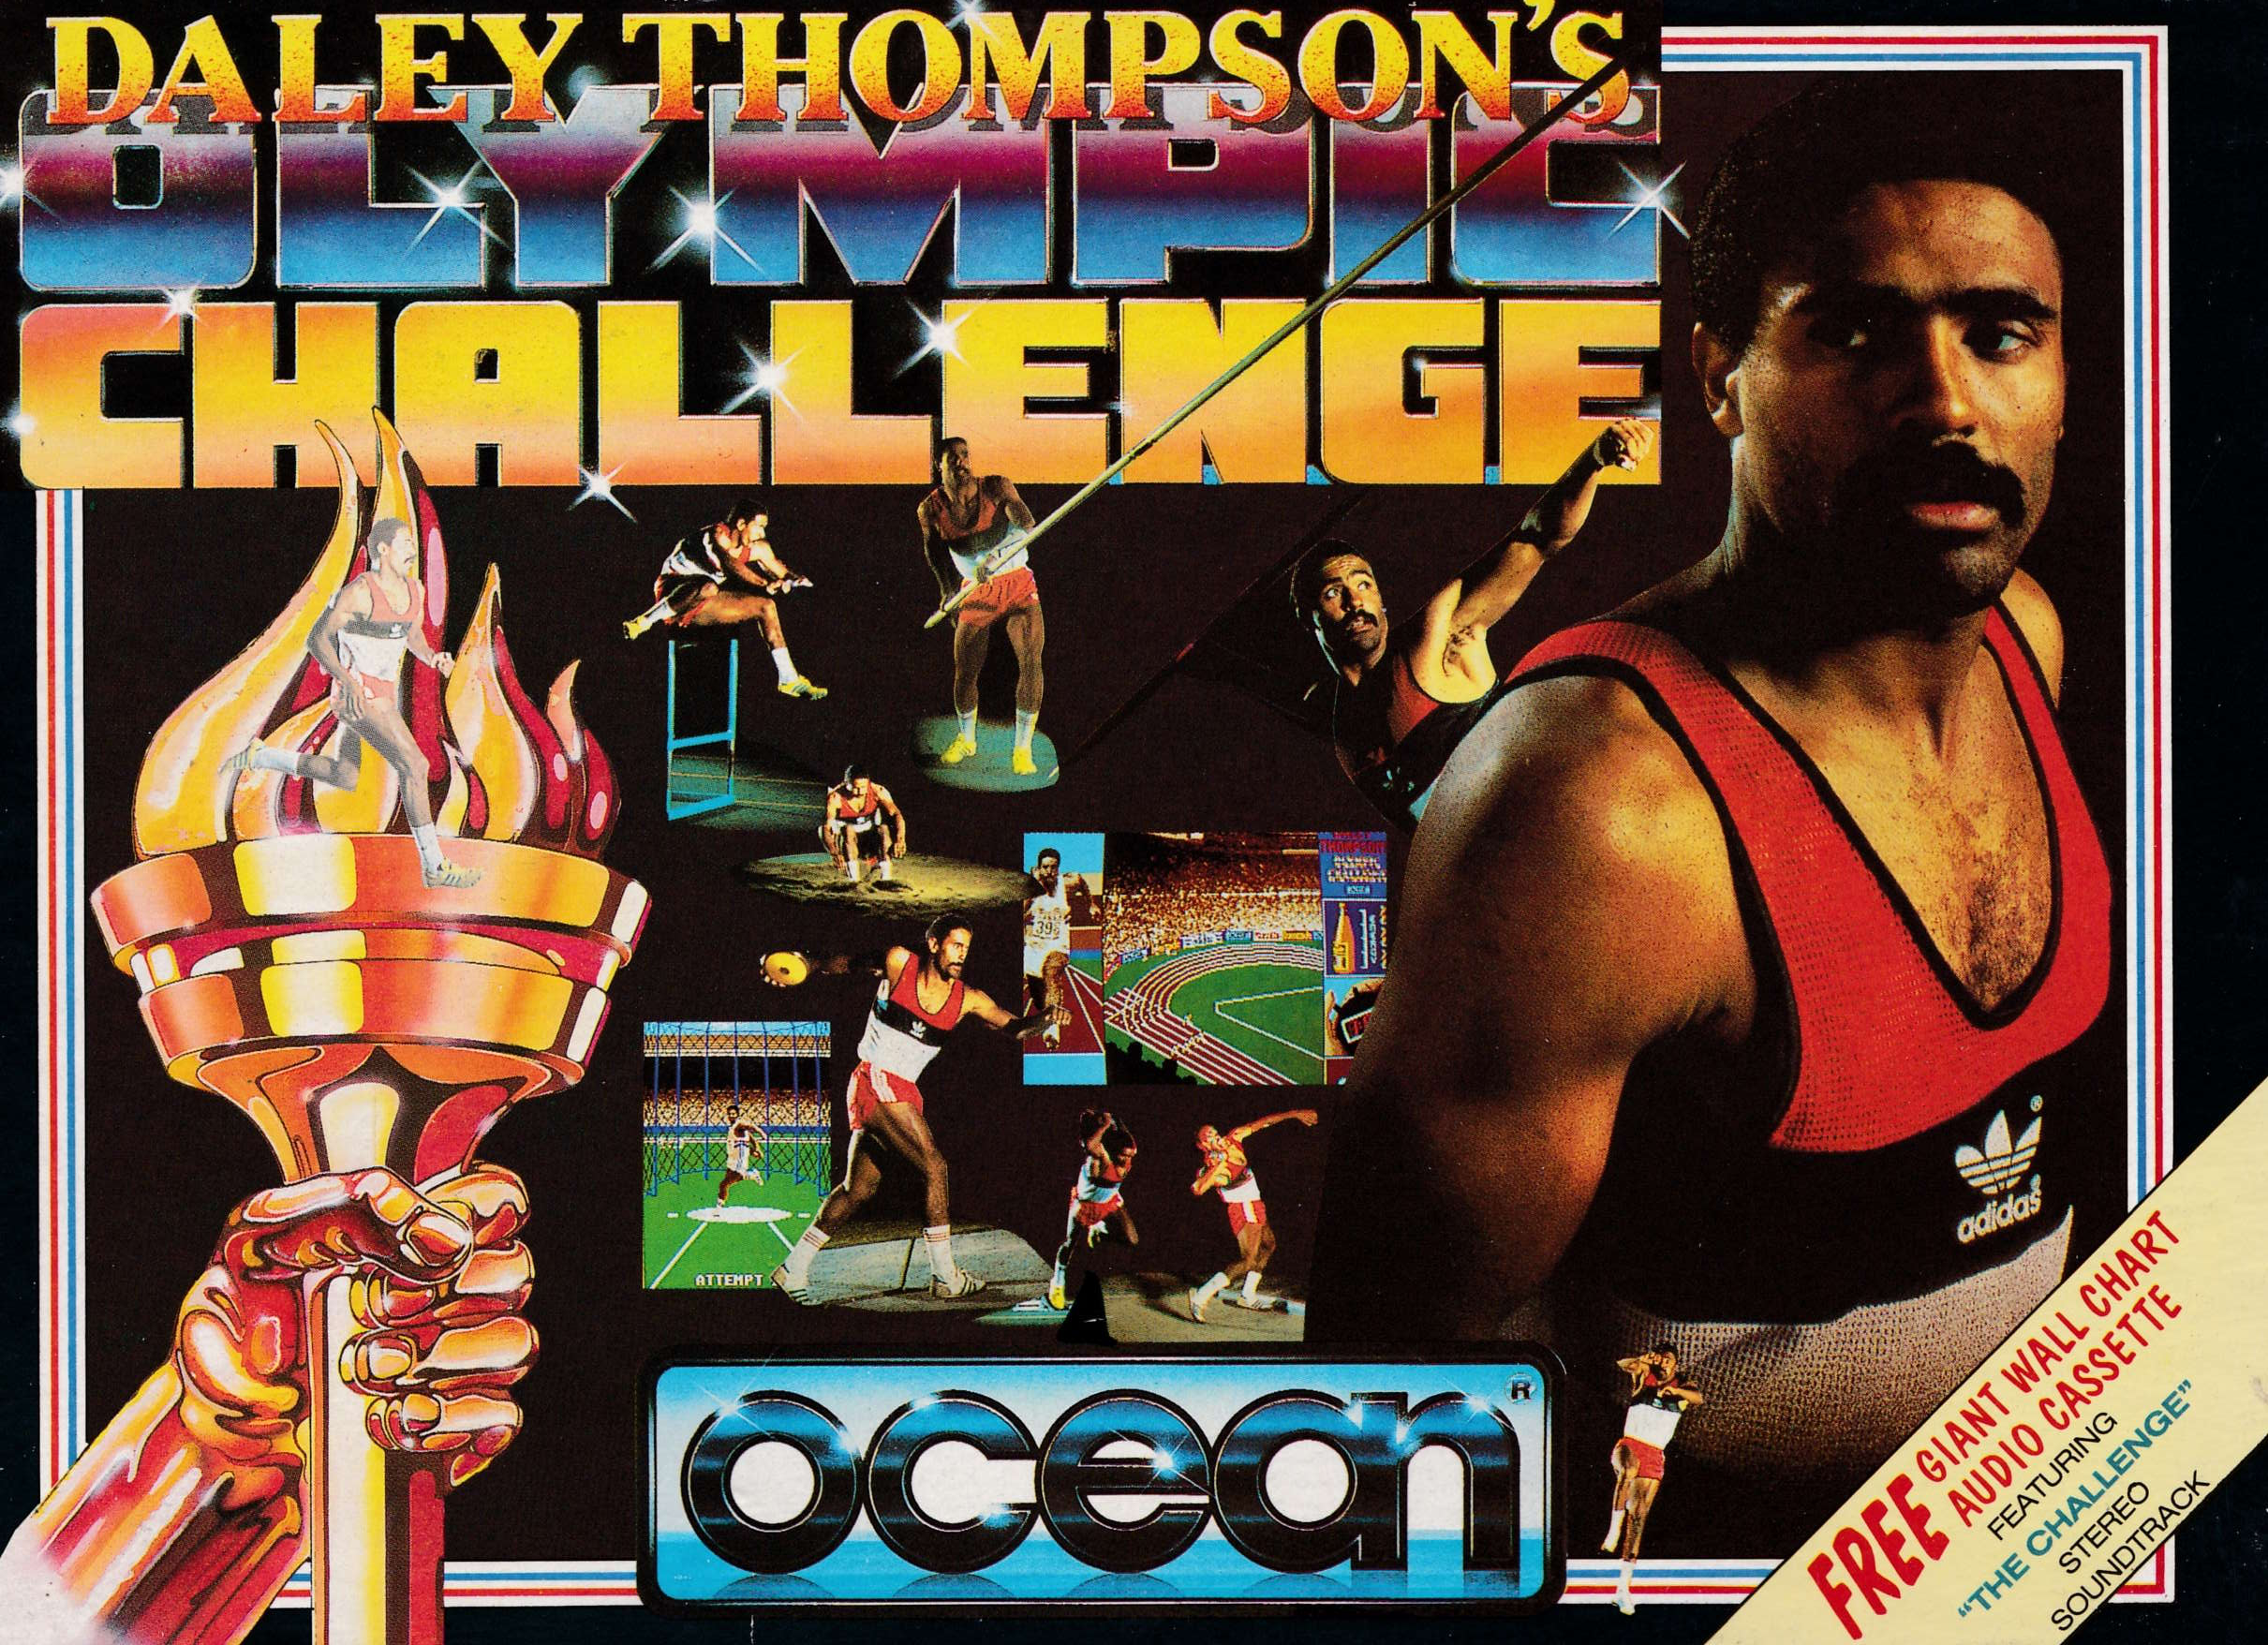 cover of the Amstrad CPC game Daley Thompson's Olympic Challenge  by GameBase CPC